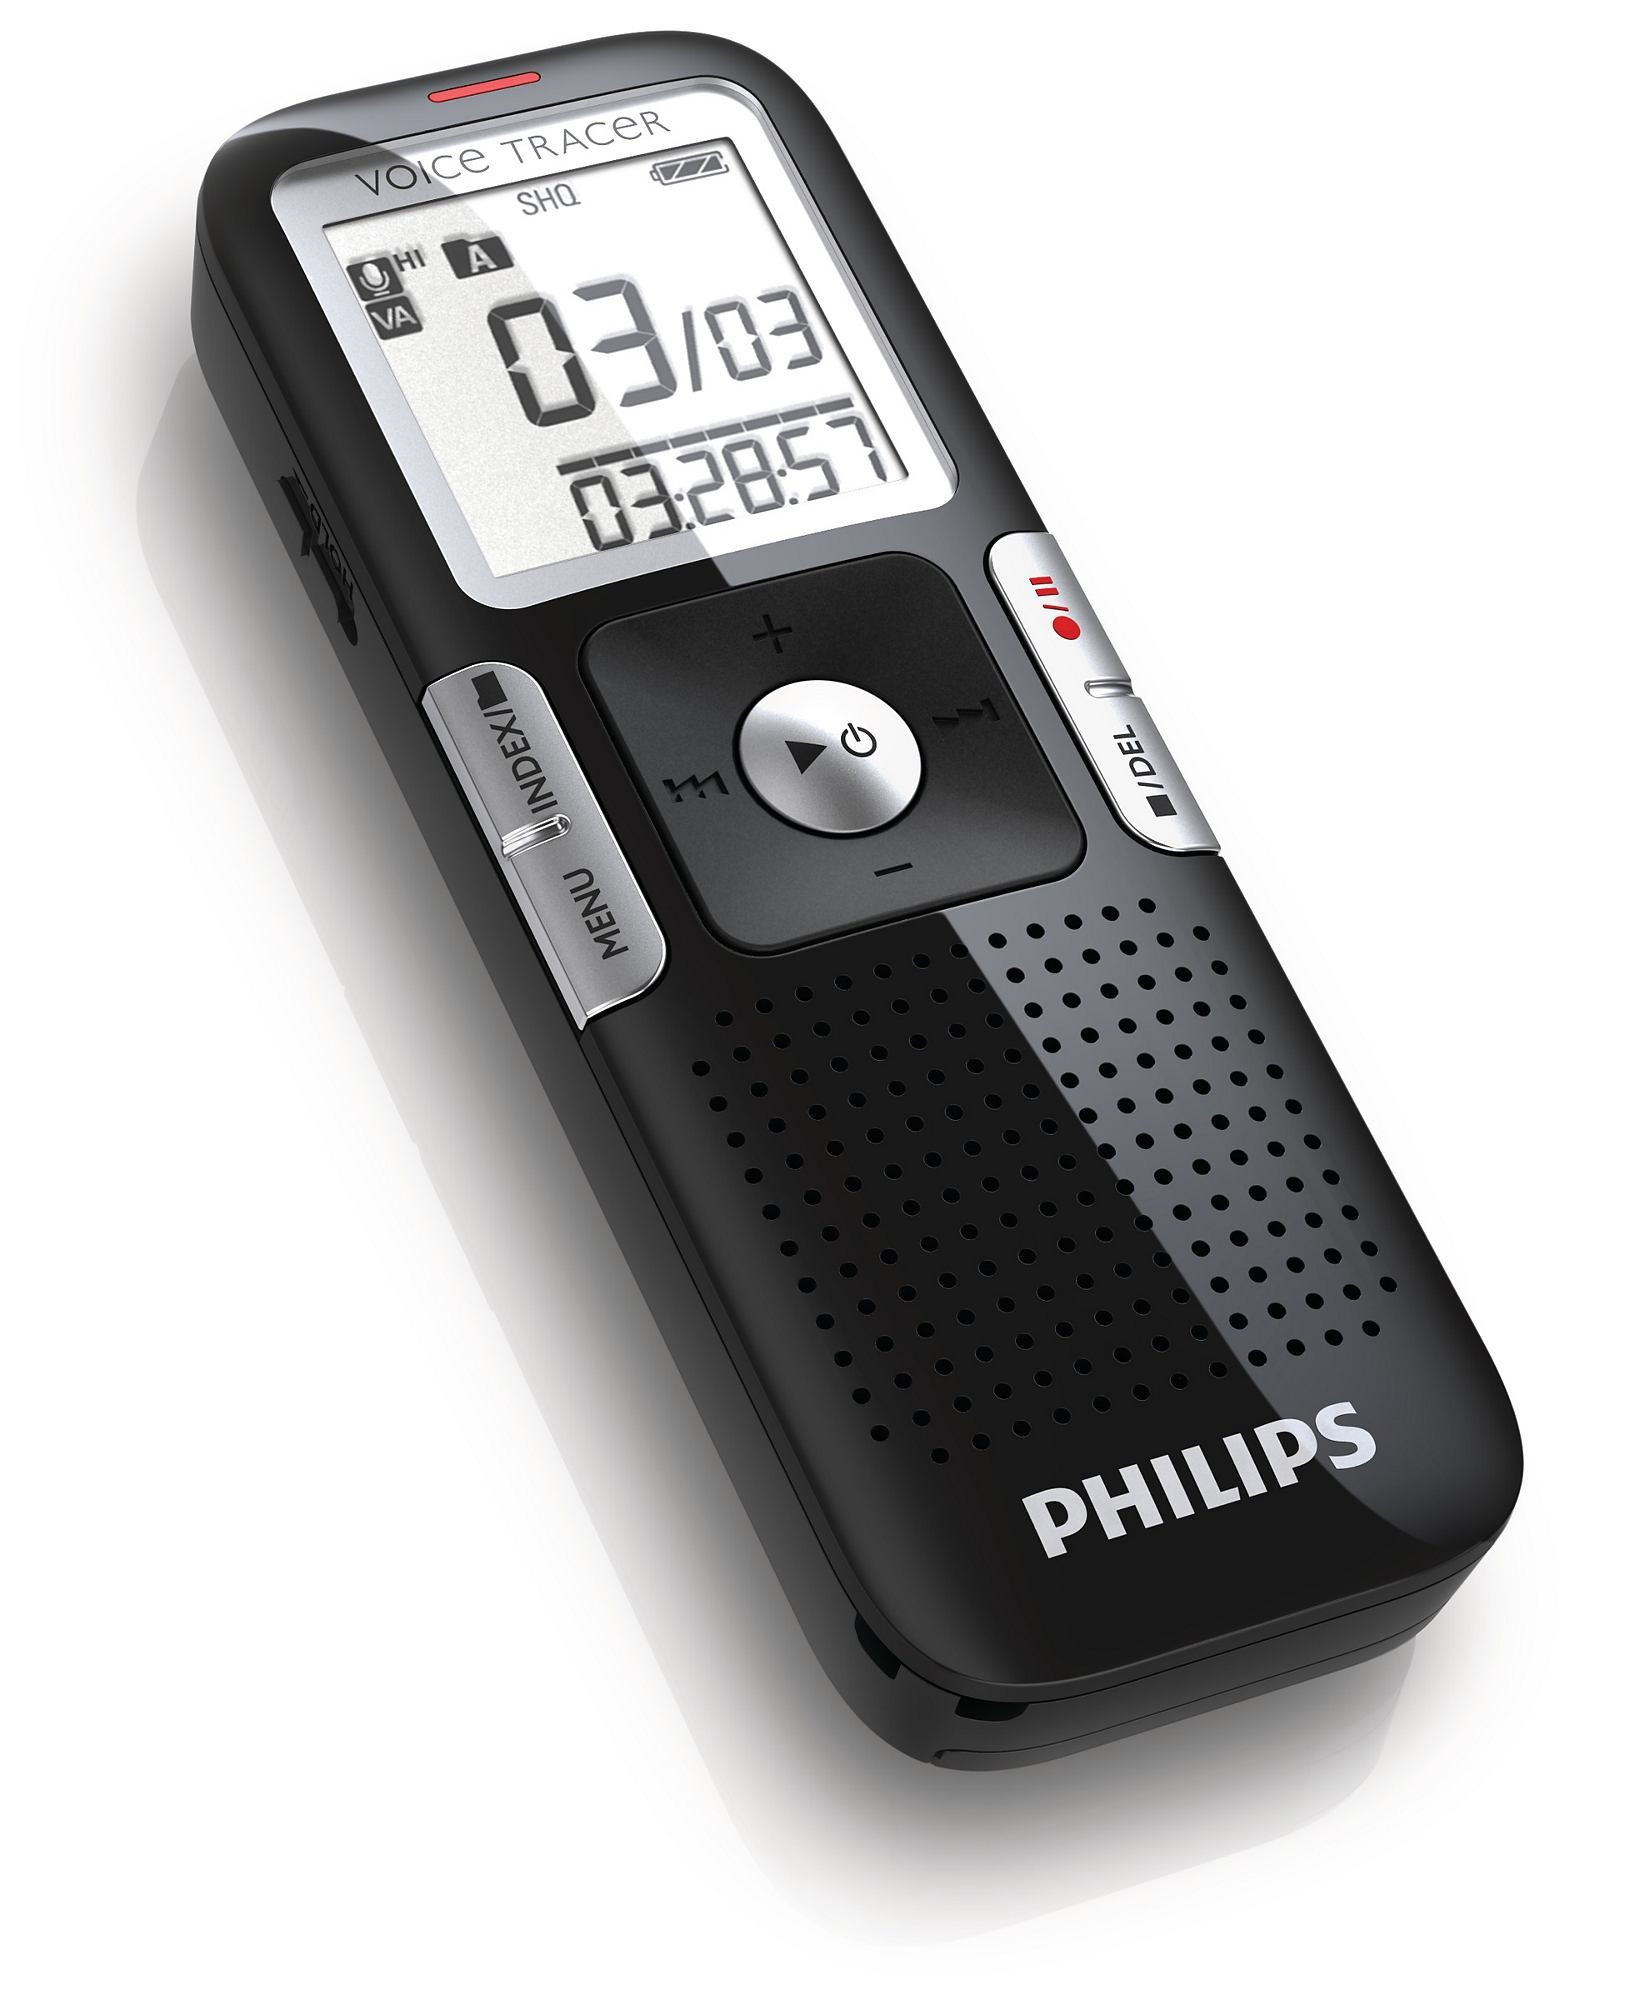 Philips LFH0642 Voice Tracer digital diktafon